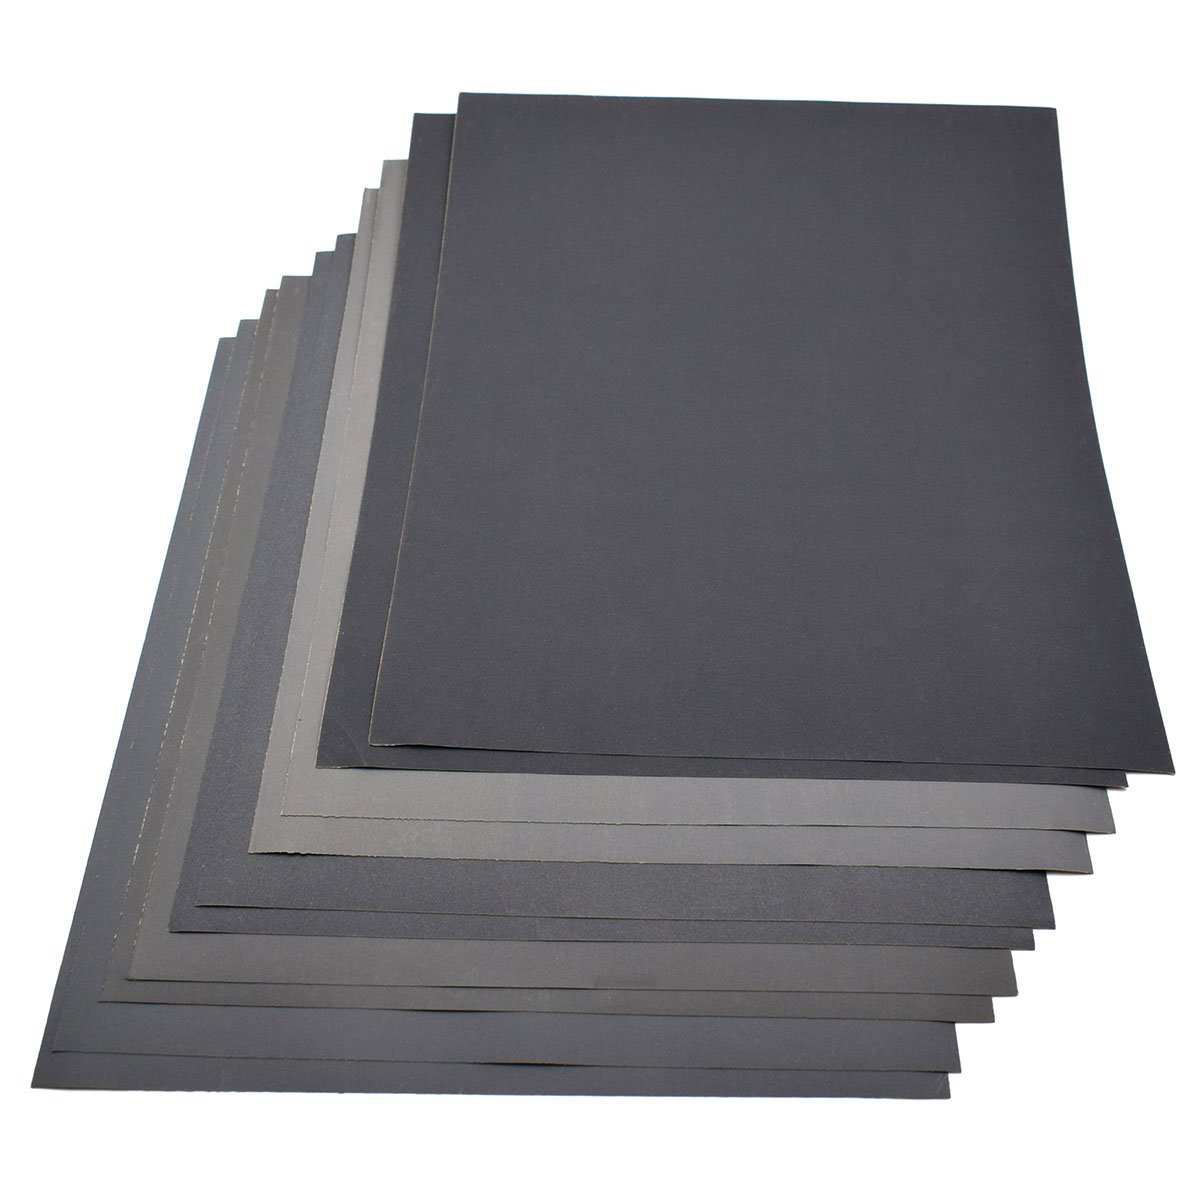 2 Mixed Assorted Ultra Fine Grades Sandpaper Wet And Dry Sand Paper Grit 2000